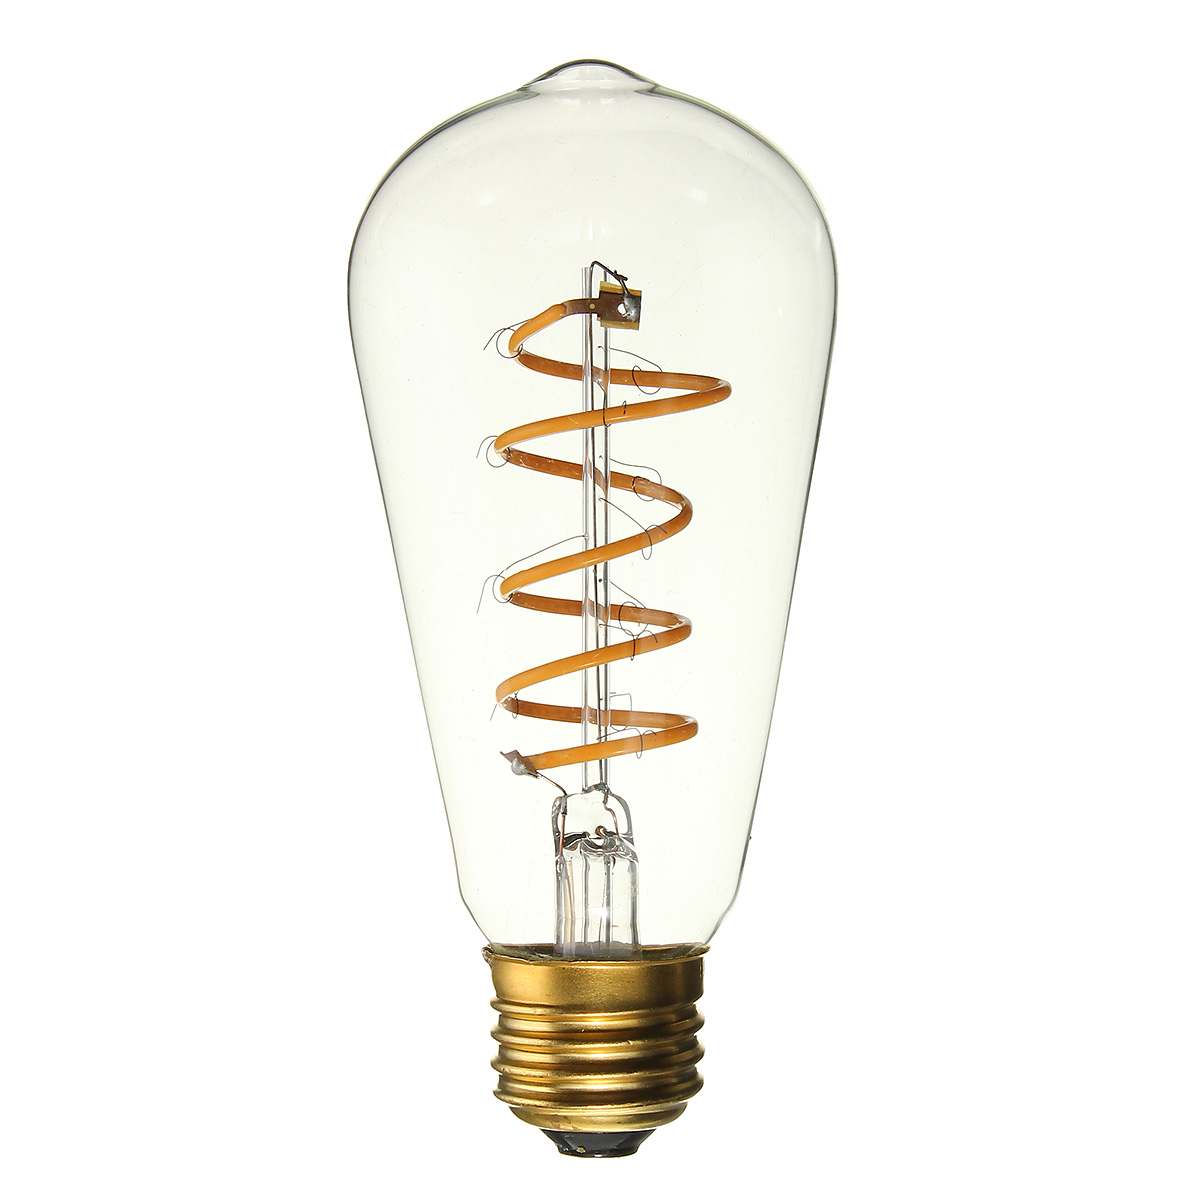 e27 dimmable cob led vintage retro industrial edison lamp indoor lighting filament light bulb. Black Bedroom Furniture Sets. Home Design Ideas